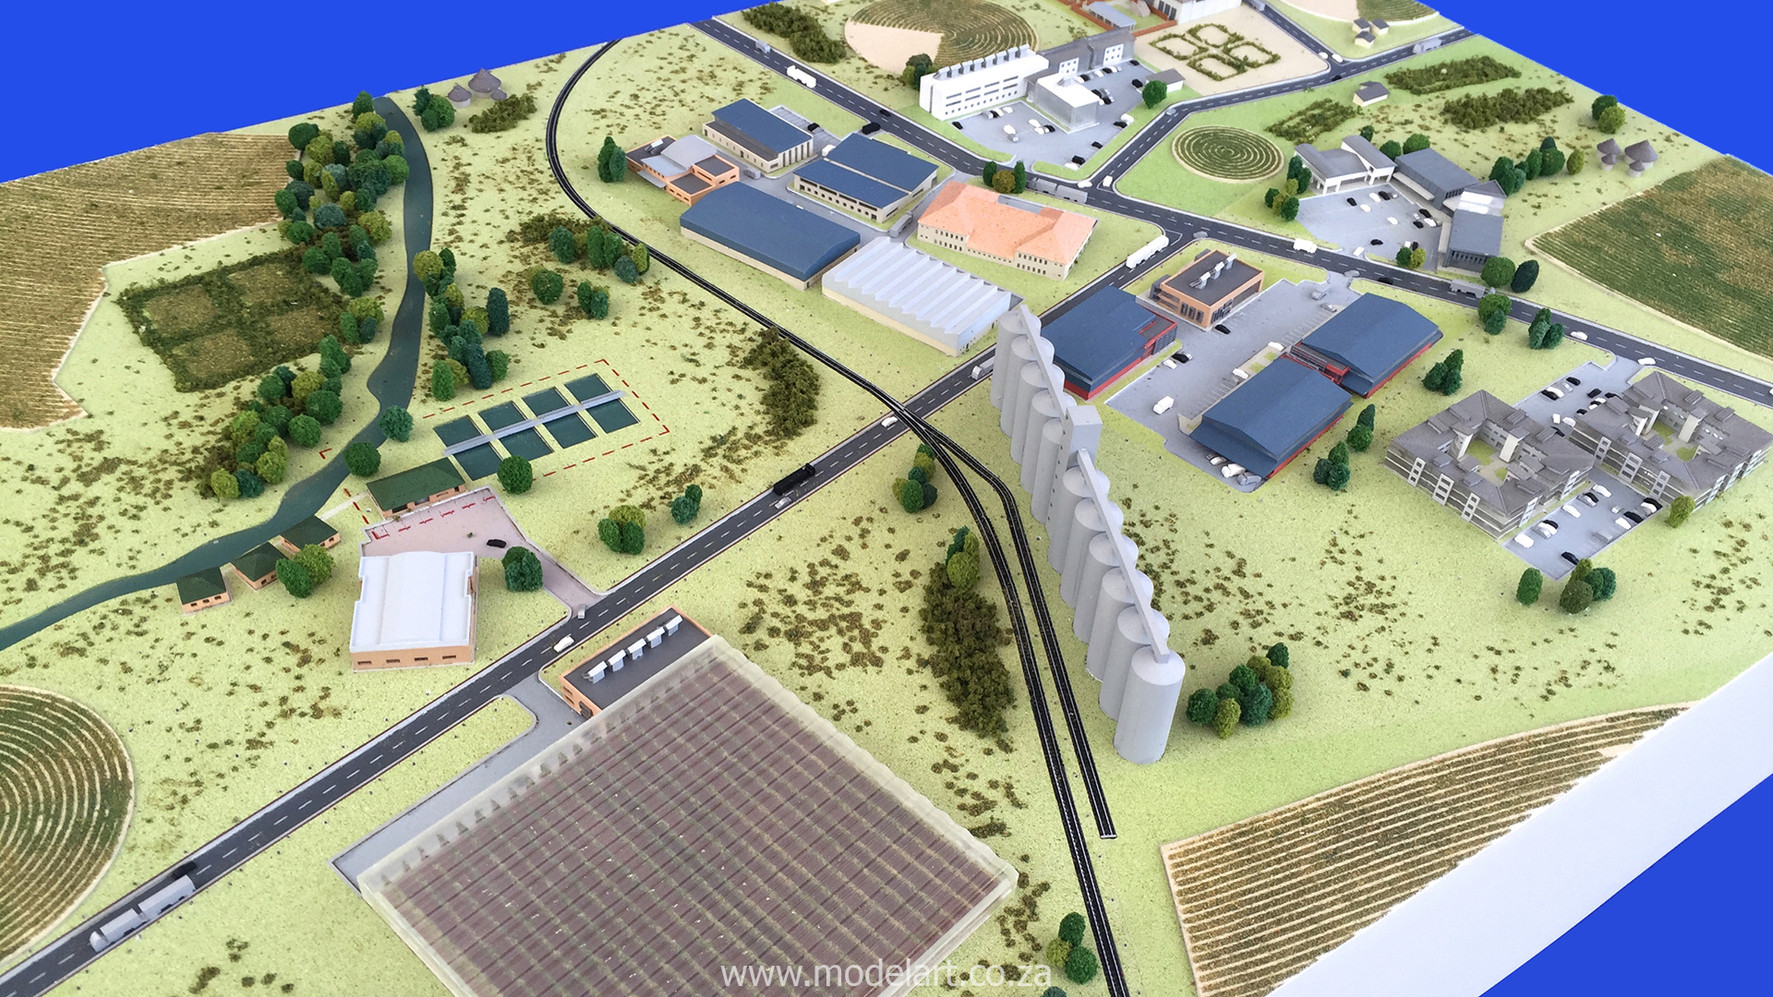 Architectural-Scale-Model-Industrial-Agri Park-3